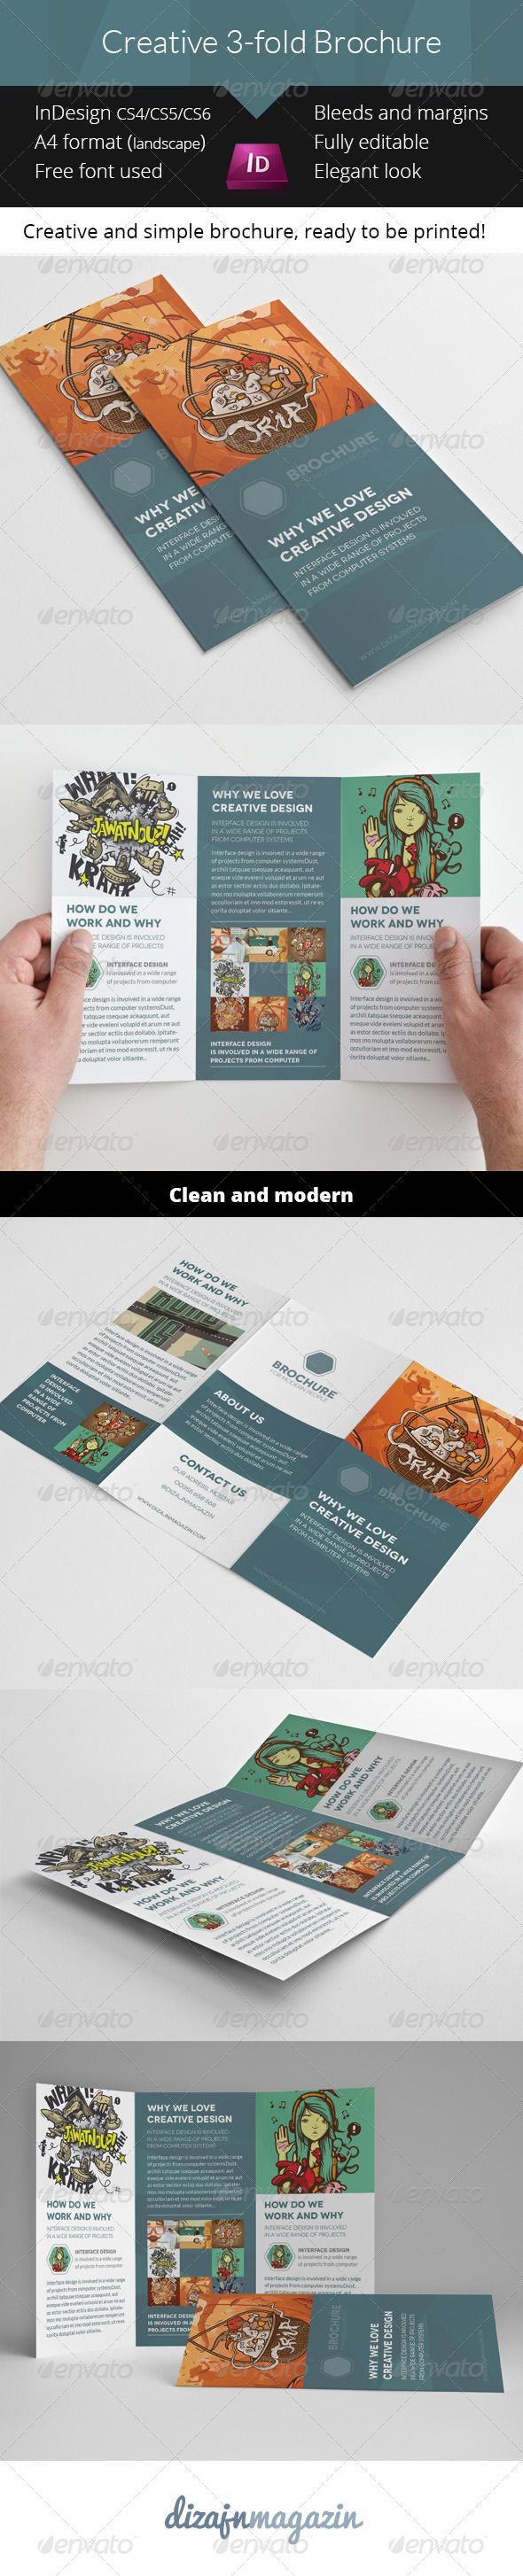 indesign 3 fold brochure template - 66 best images about adobe indesign on pinterest adobe